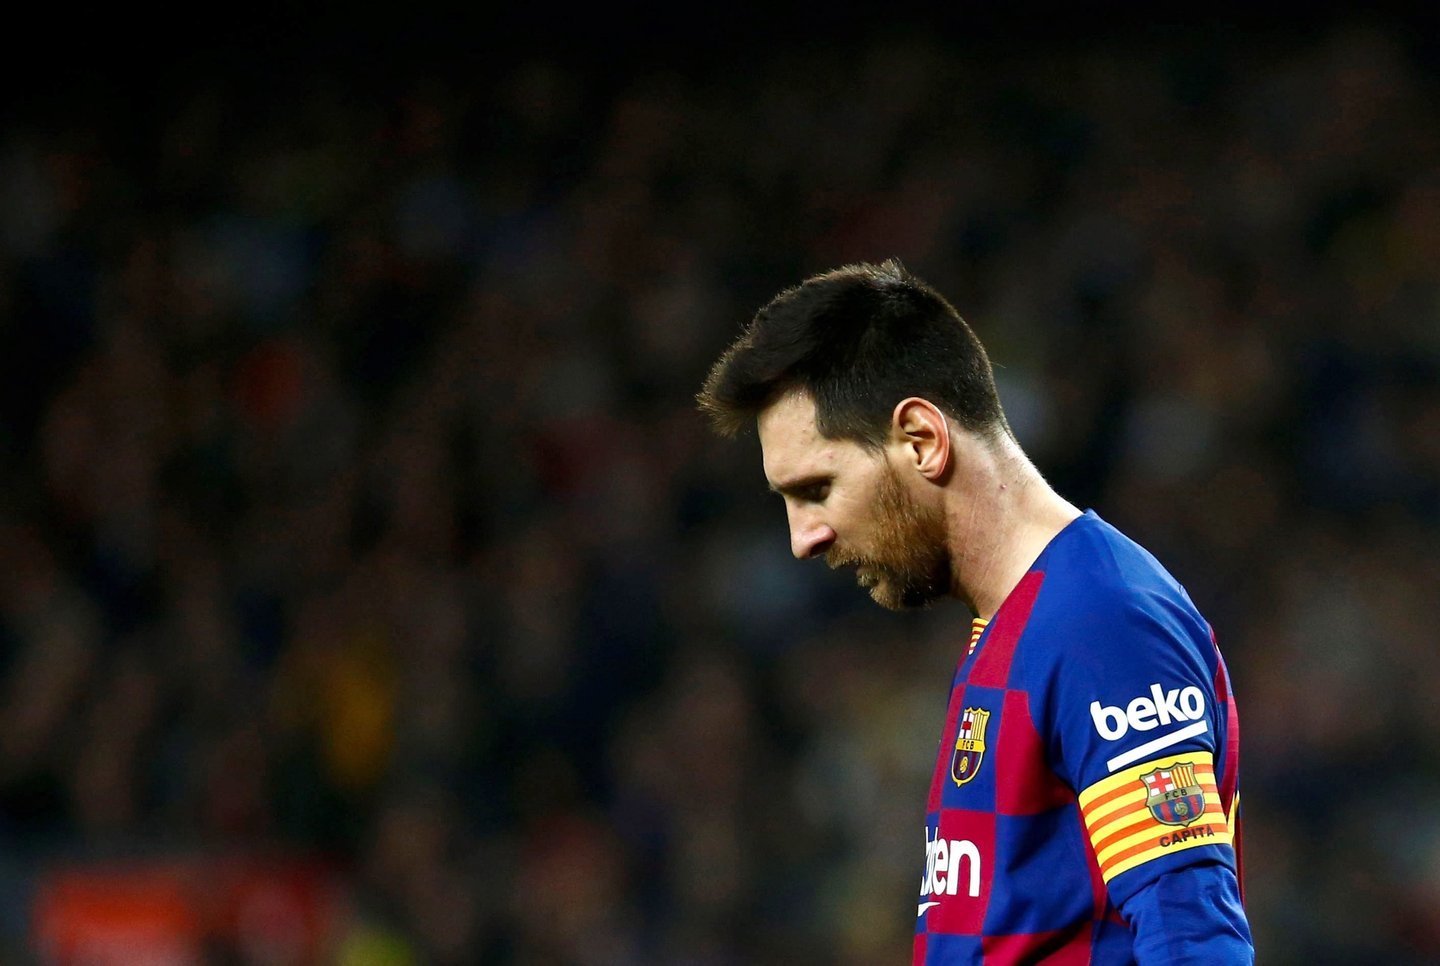 epa08625664 (FILE) - FC Barcelona's forward Lionel Messi reacts during the Spanish LaLiga soccer match between FC Barcelona and Real Madrid, in Barcelona, Spain, 18 December 2019, re-issued 25 August 2020. Messi has sent a certified letter to the club on 25 August communicating his intentions to leave the club. EPA/ENRIC FONTCUBERTA *** Local Caption *** 55718616